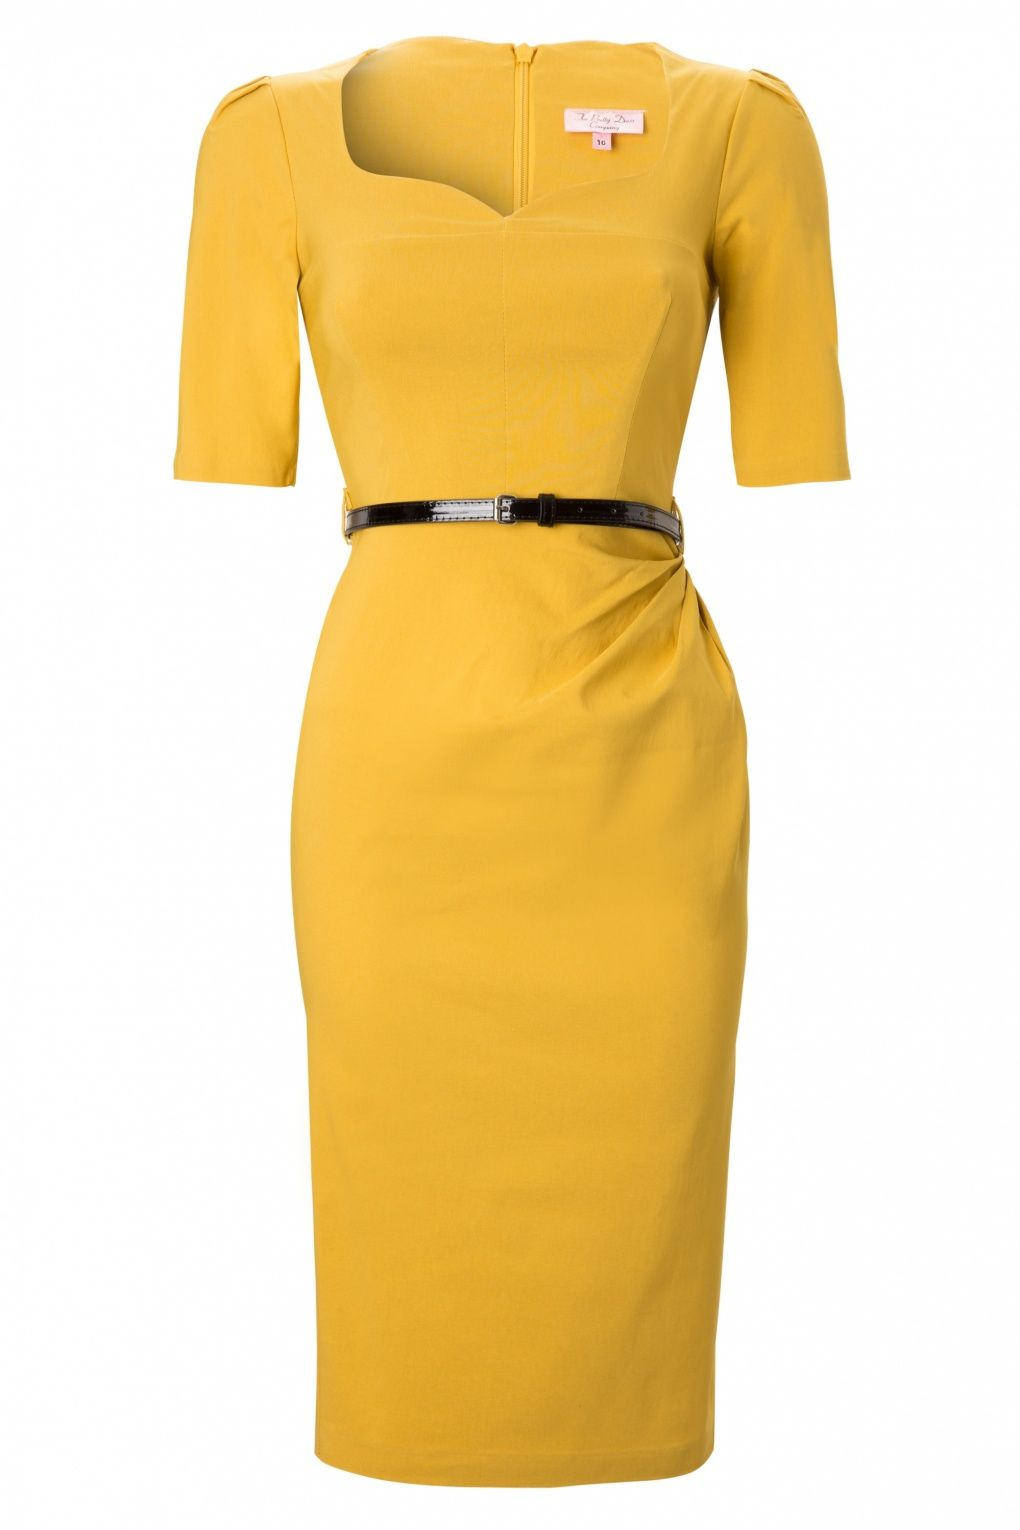 #Topvintage#So Couture - Charlotte Sweetheart Pencil dress in Mustard 1/2 sleeve